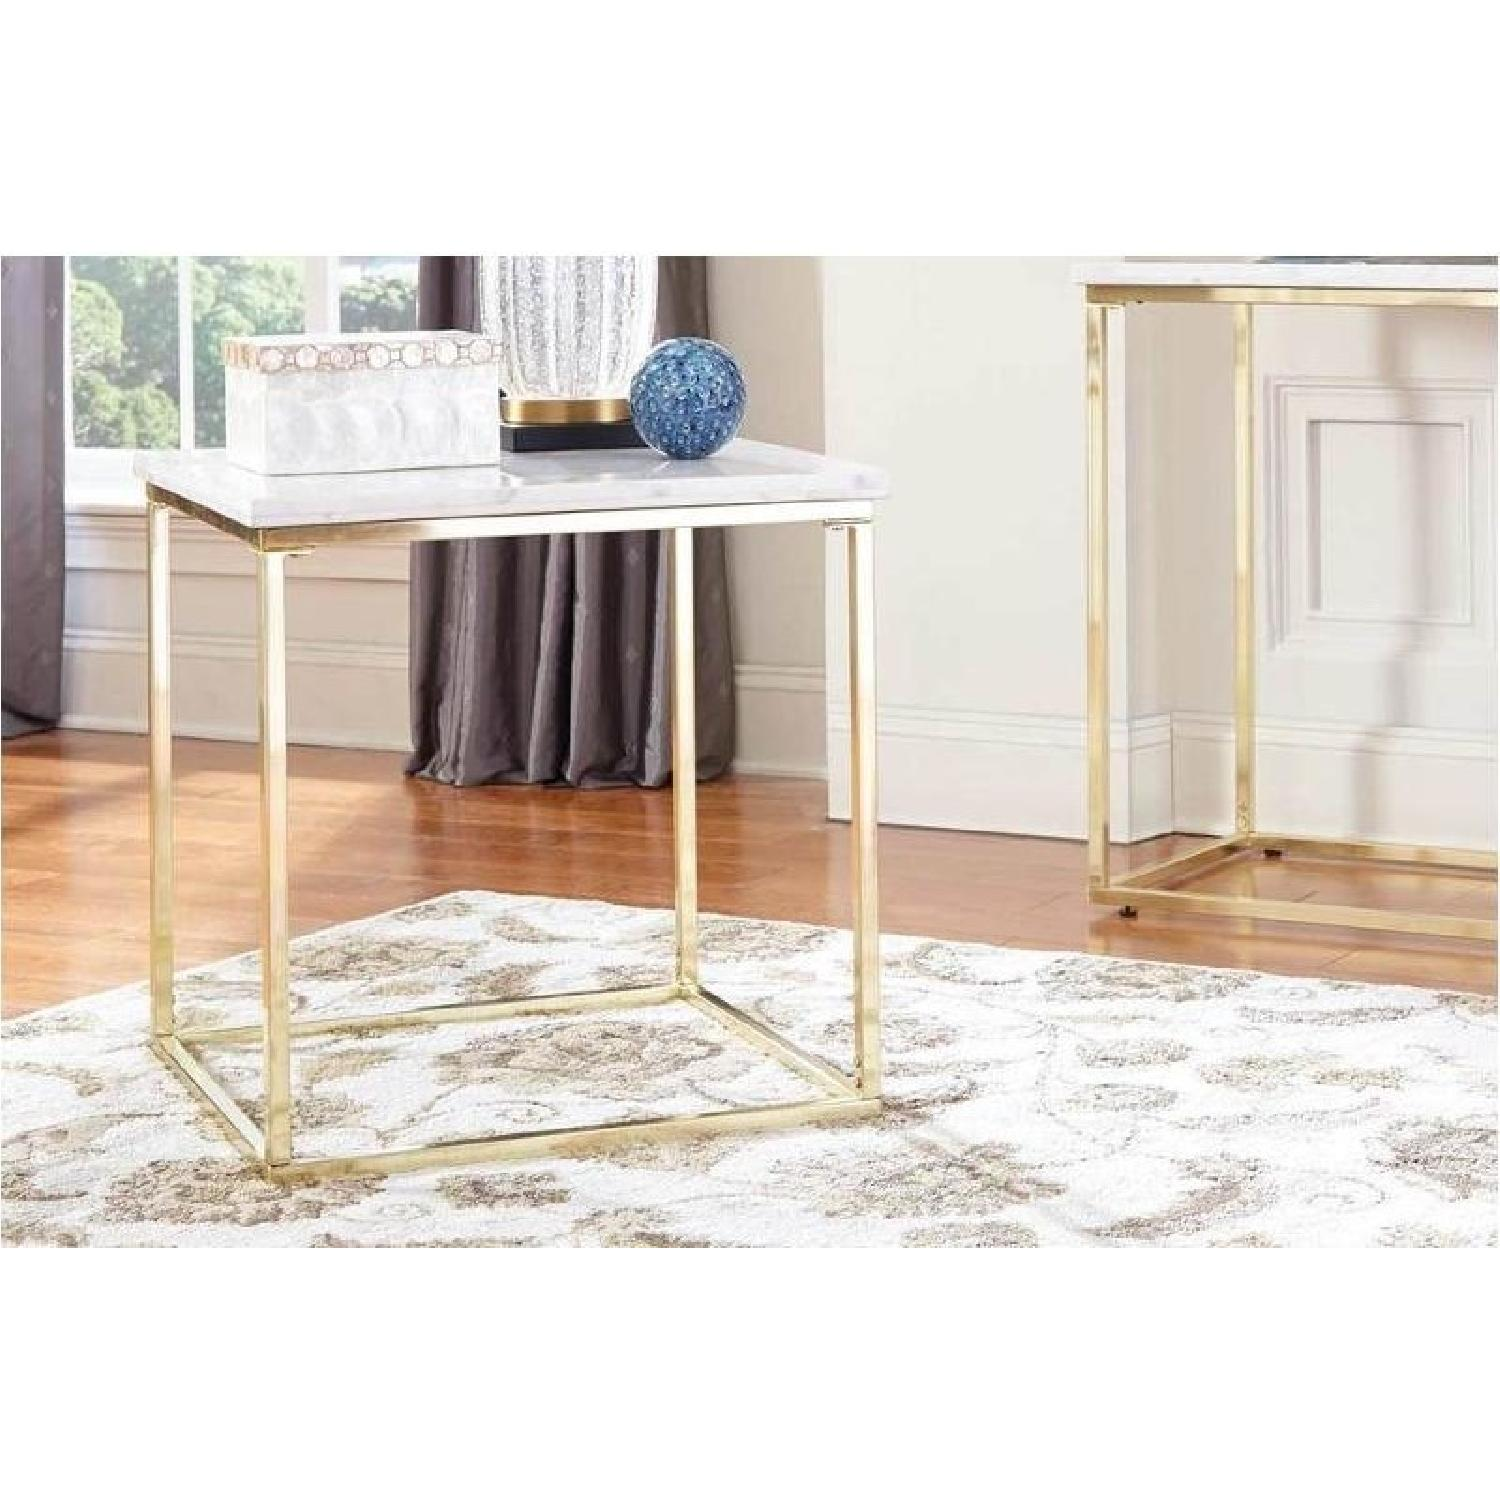 Modern White Marble Top Side Table w/ Brushed Brass Legs - image-3